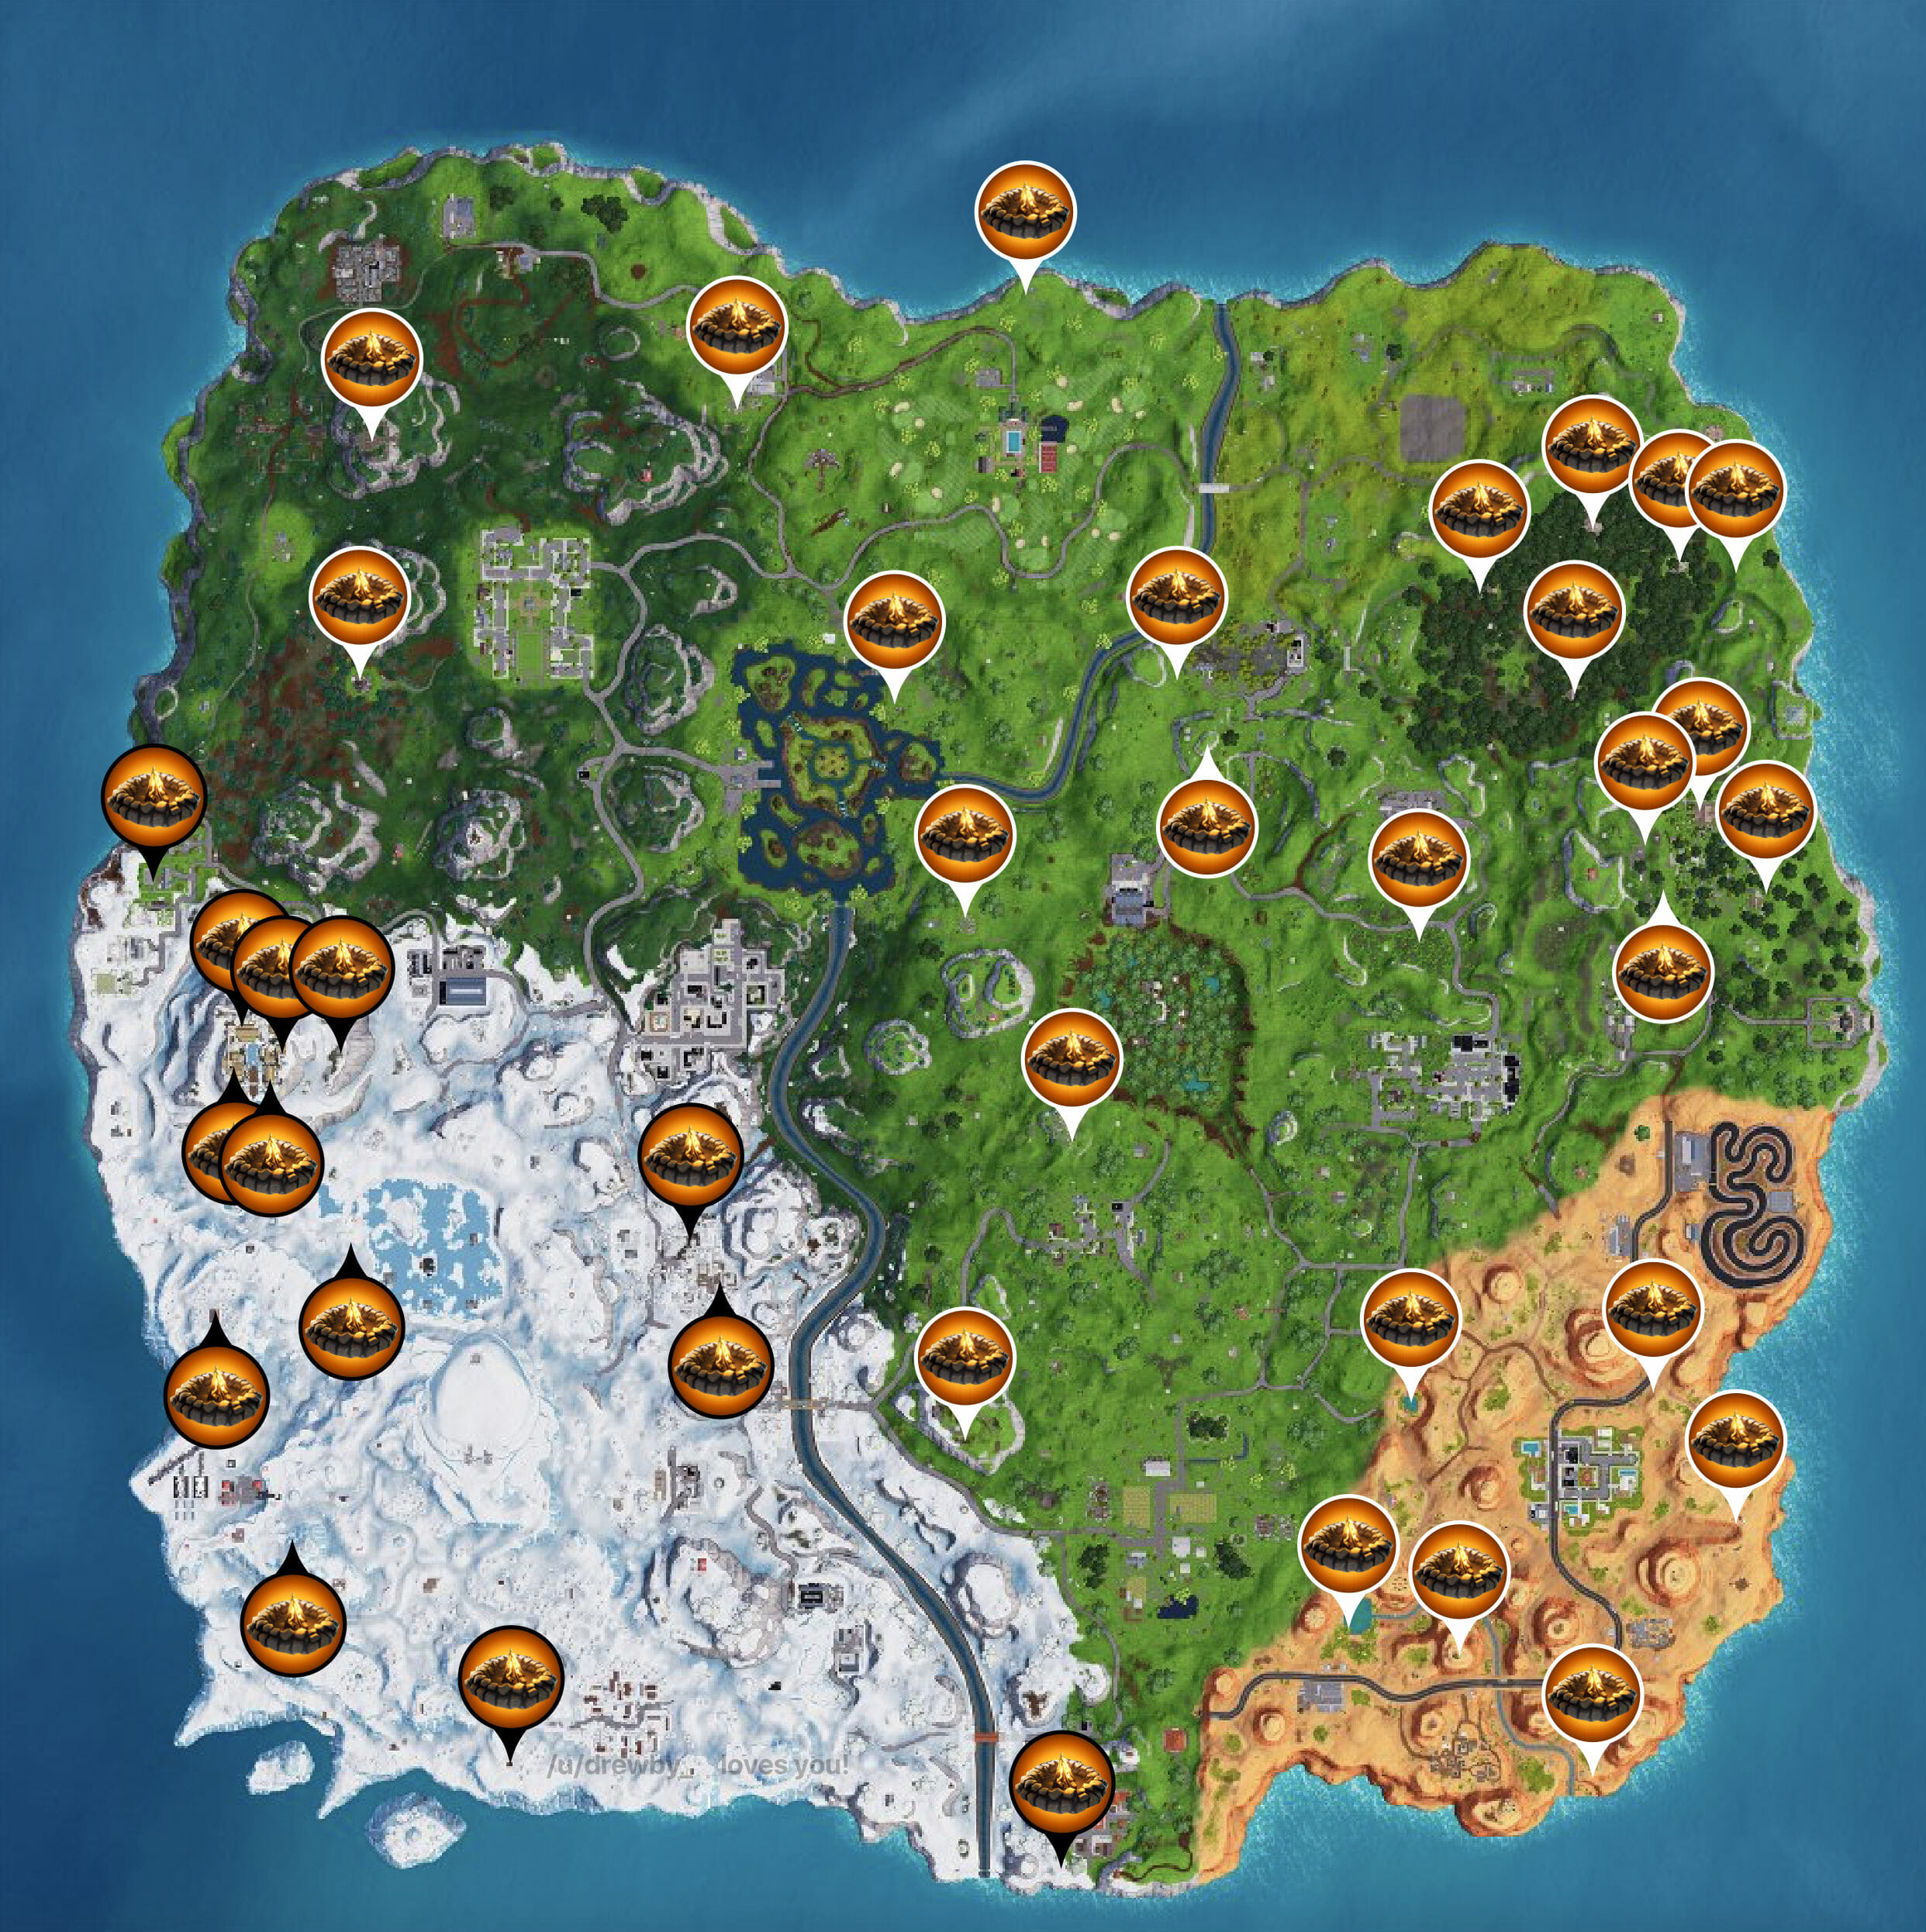 fortnite prisoner skin campfire locations